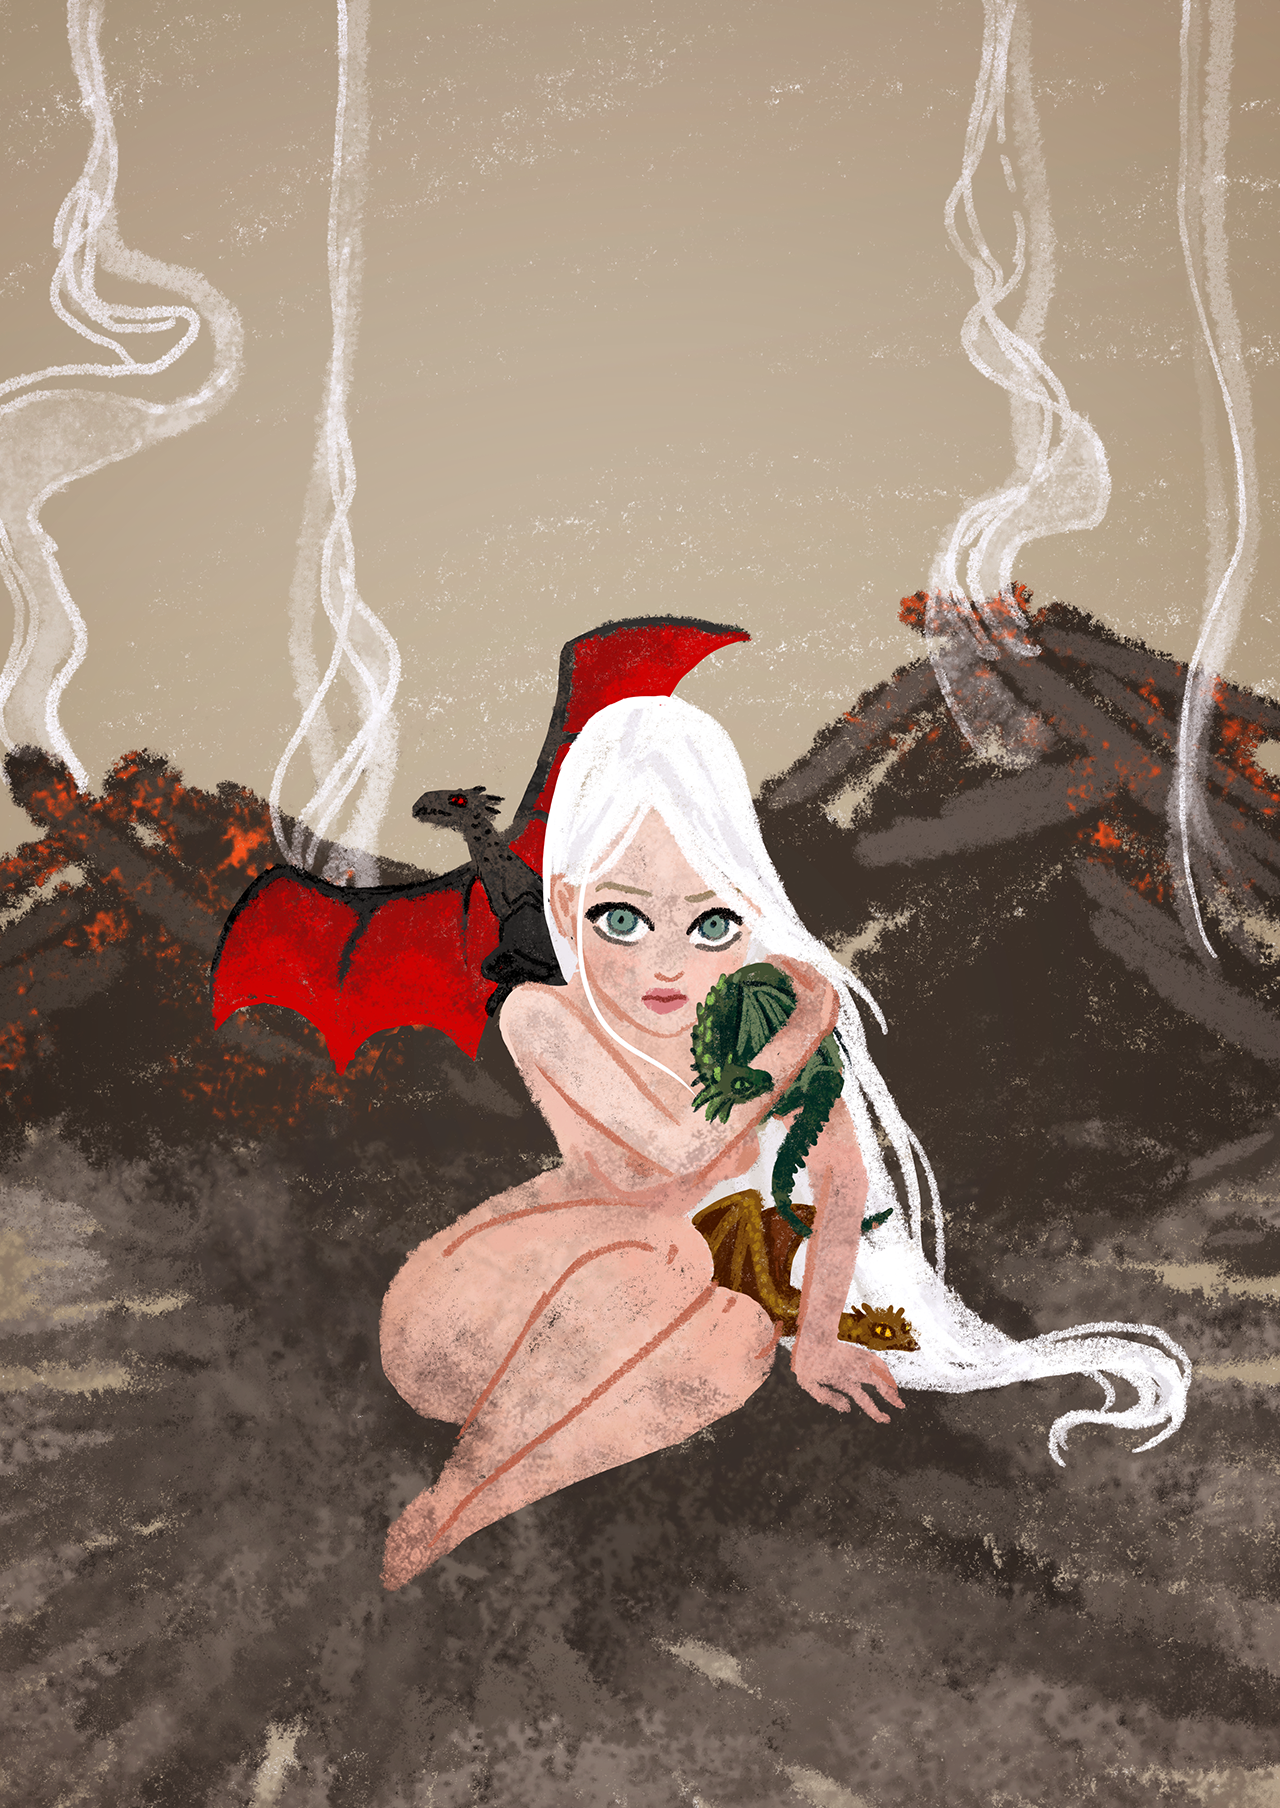 Dragons game of thrones colors - Daenerys Targaryen With Her Dragons In The Fire Scene From Game Of Thrones